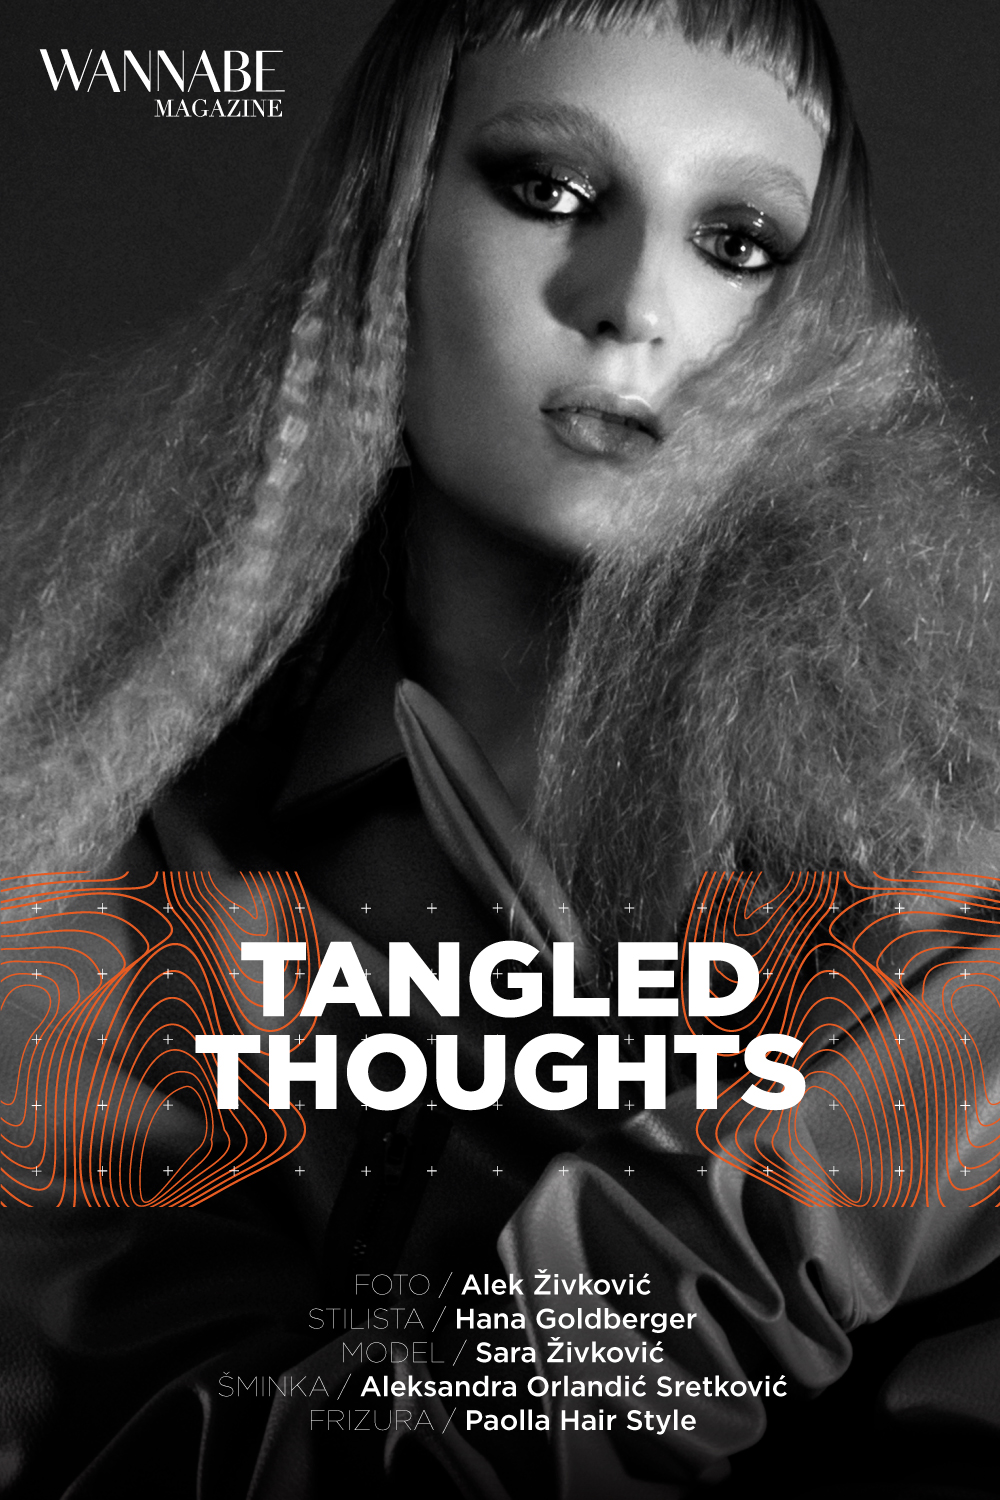 WANNABE EDITORIJAL: Tangled Thoughts